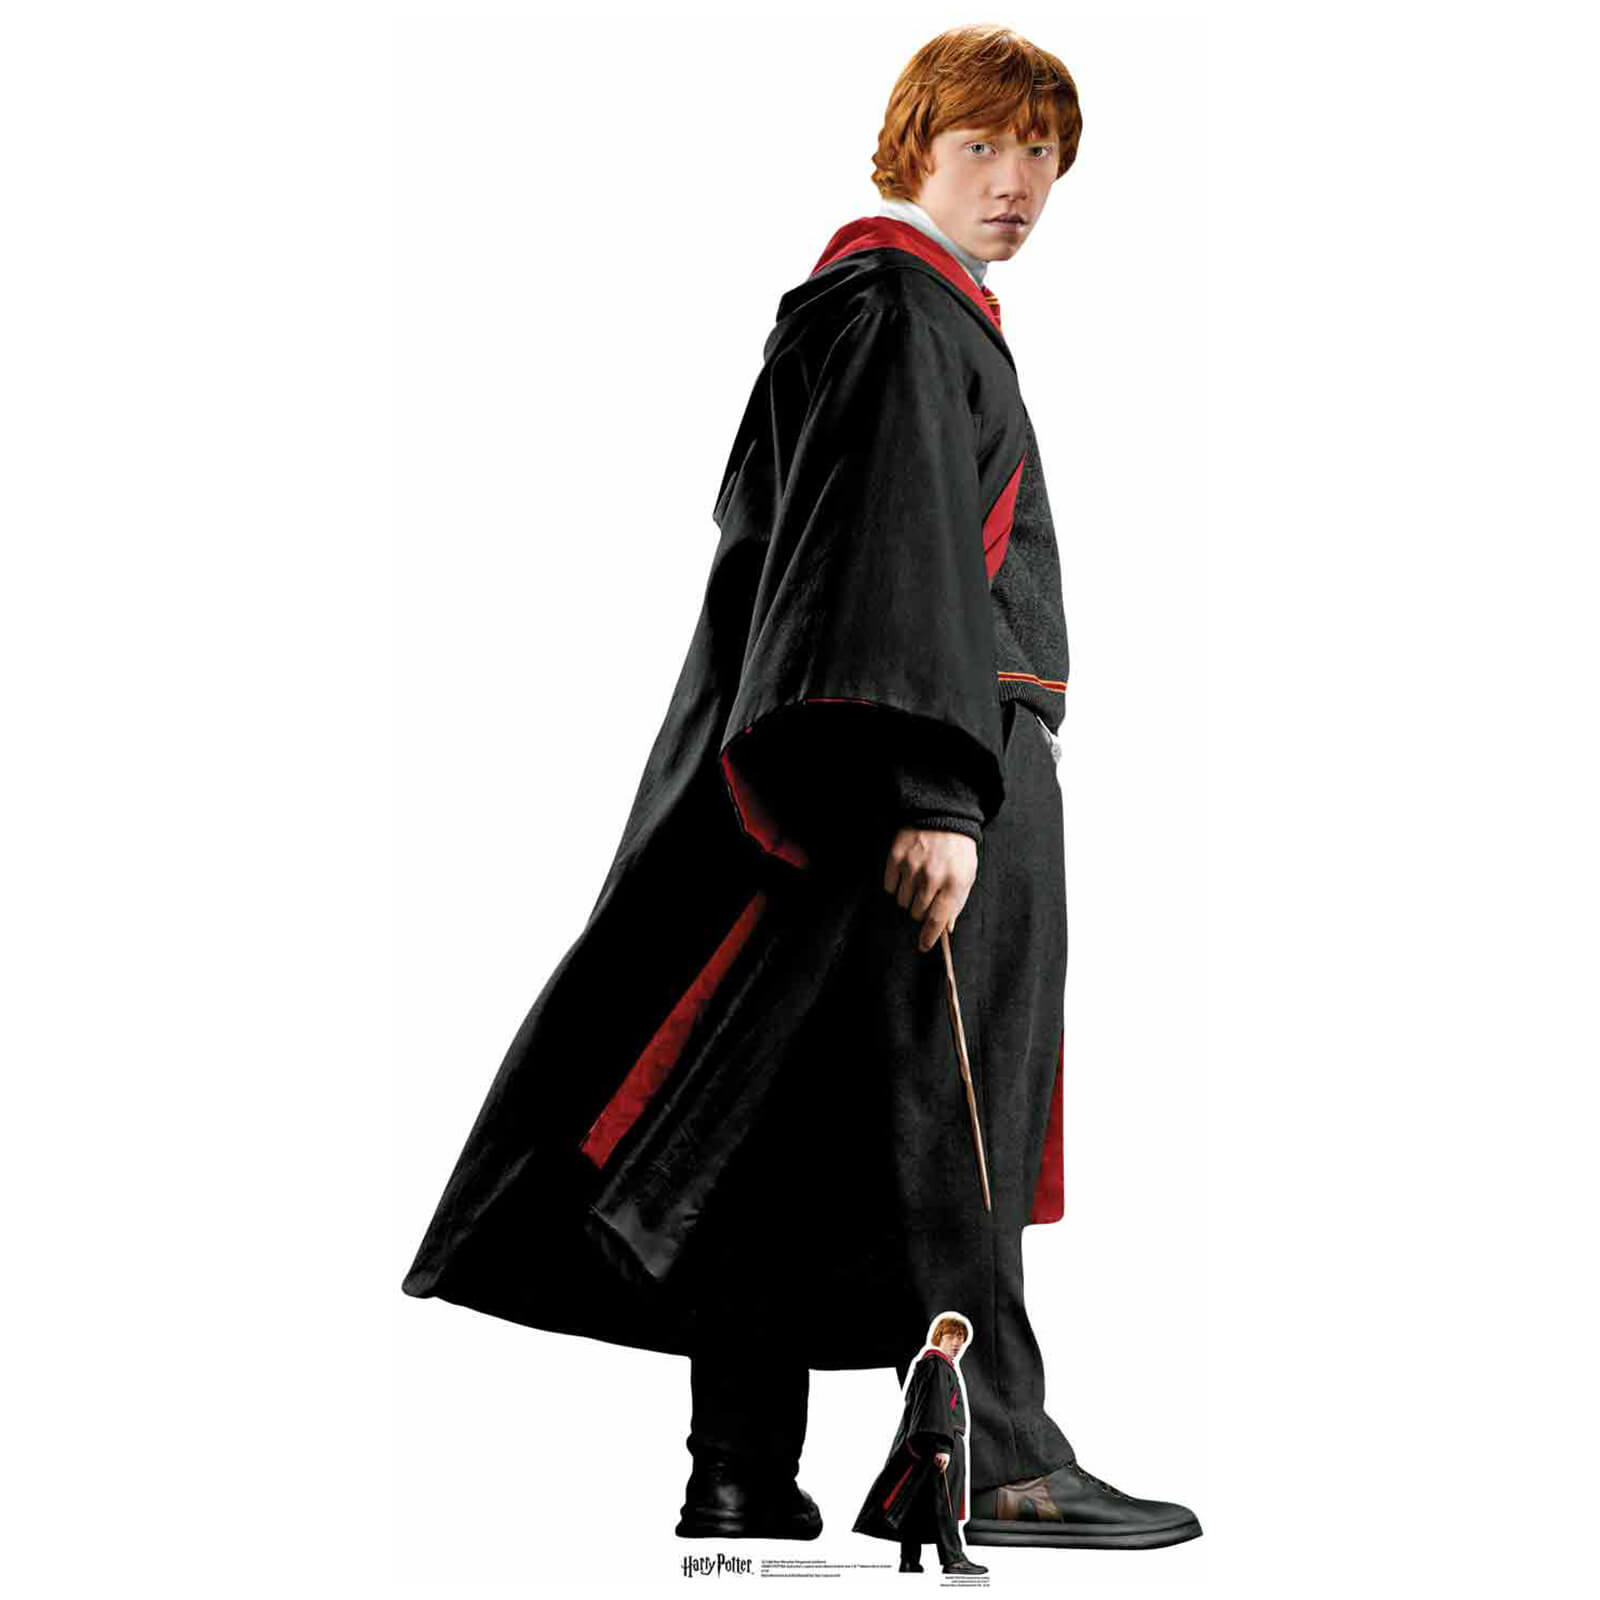 Ron Weasley (Hogwarts School of Witchcraft and Wizardry Uniform) Over Sized Cut Out